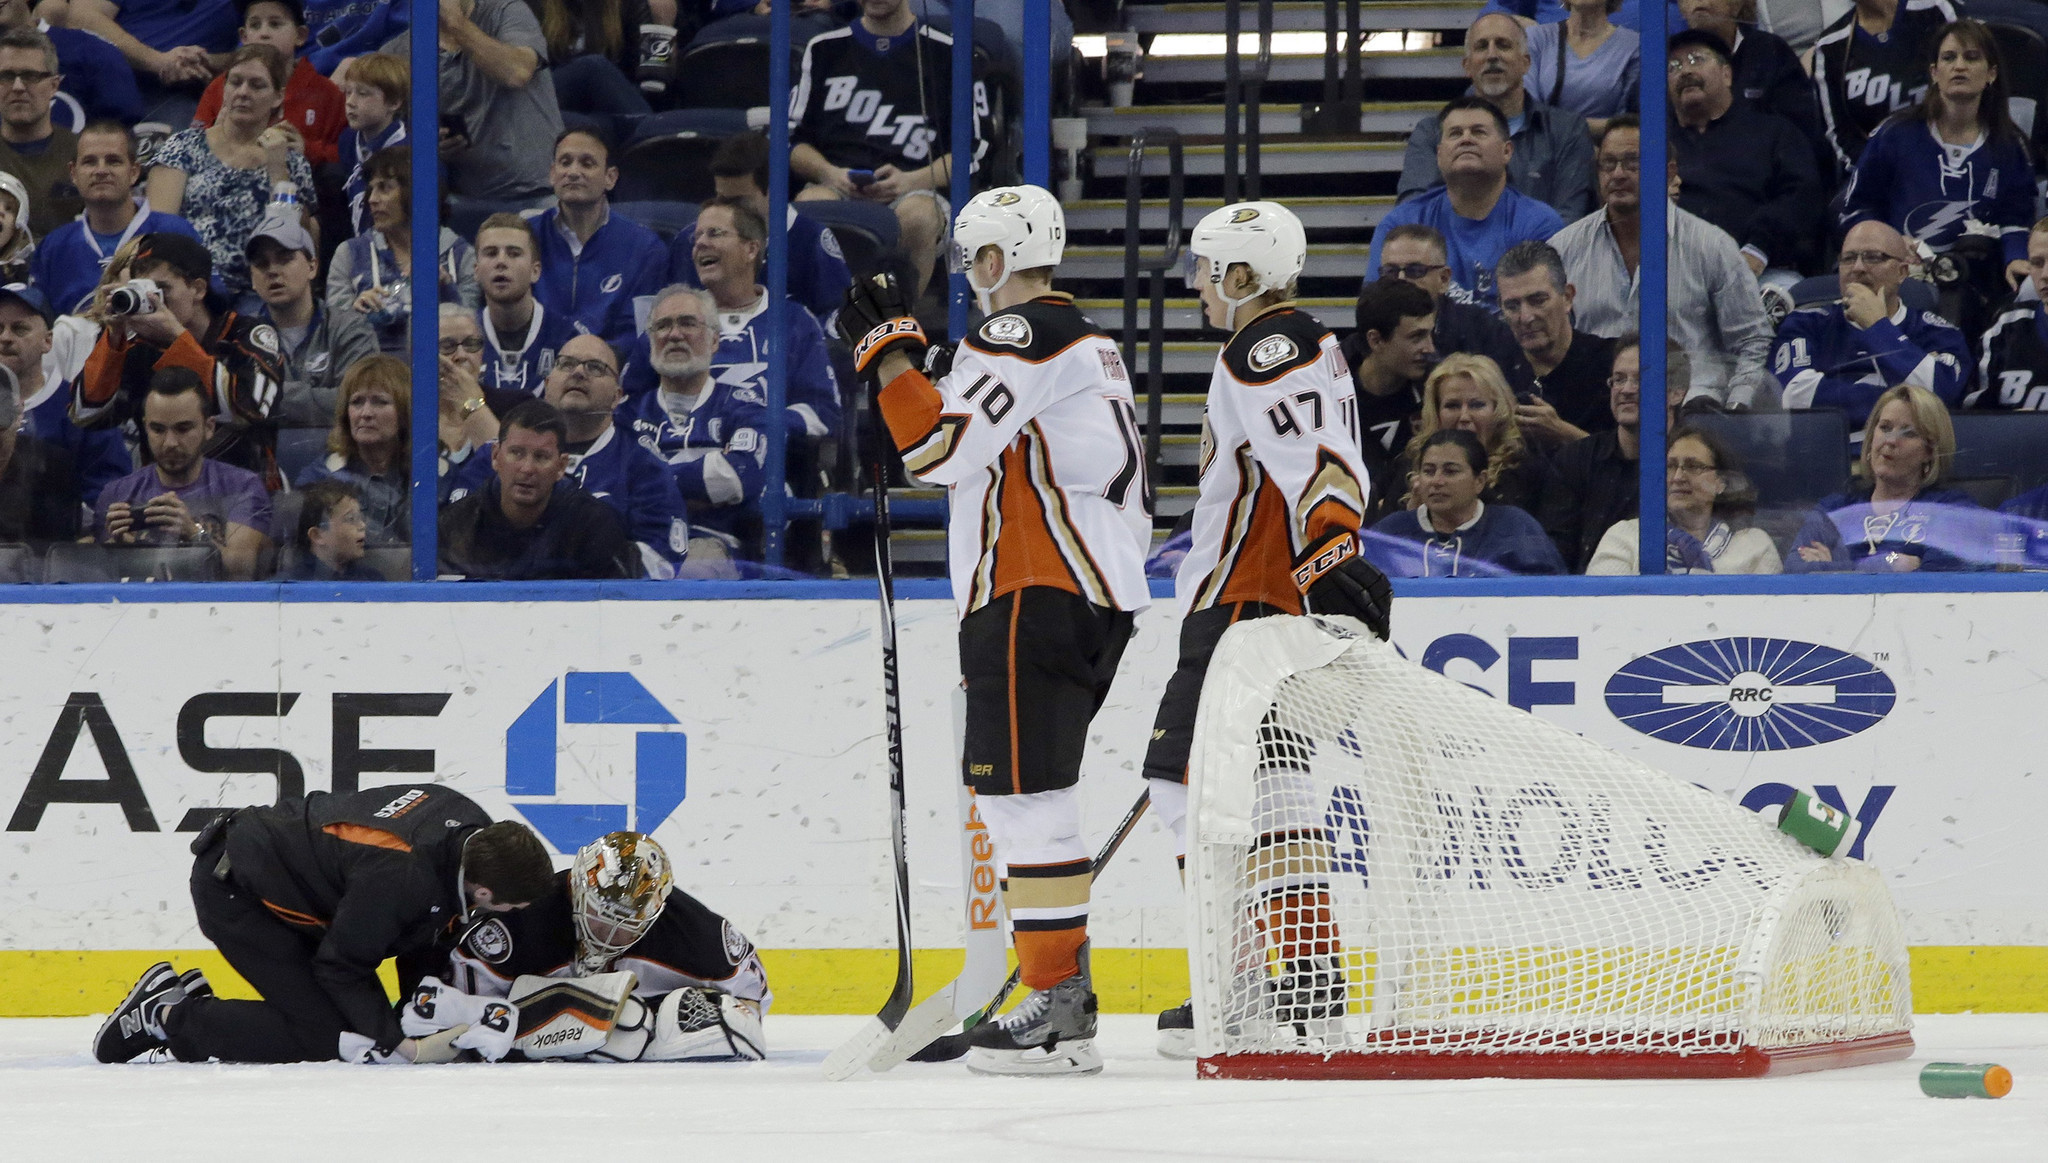 Ducks' Frederik Andersen May Sit Out After Head Injury In Sunday's Game